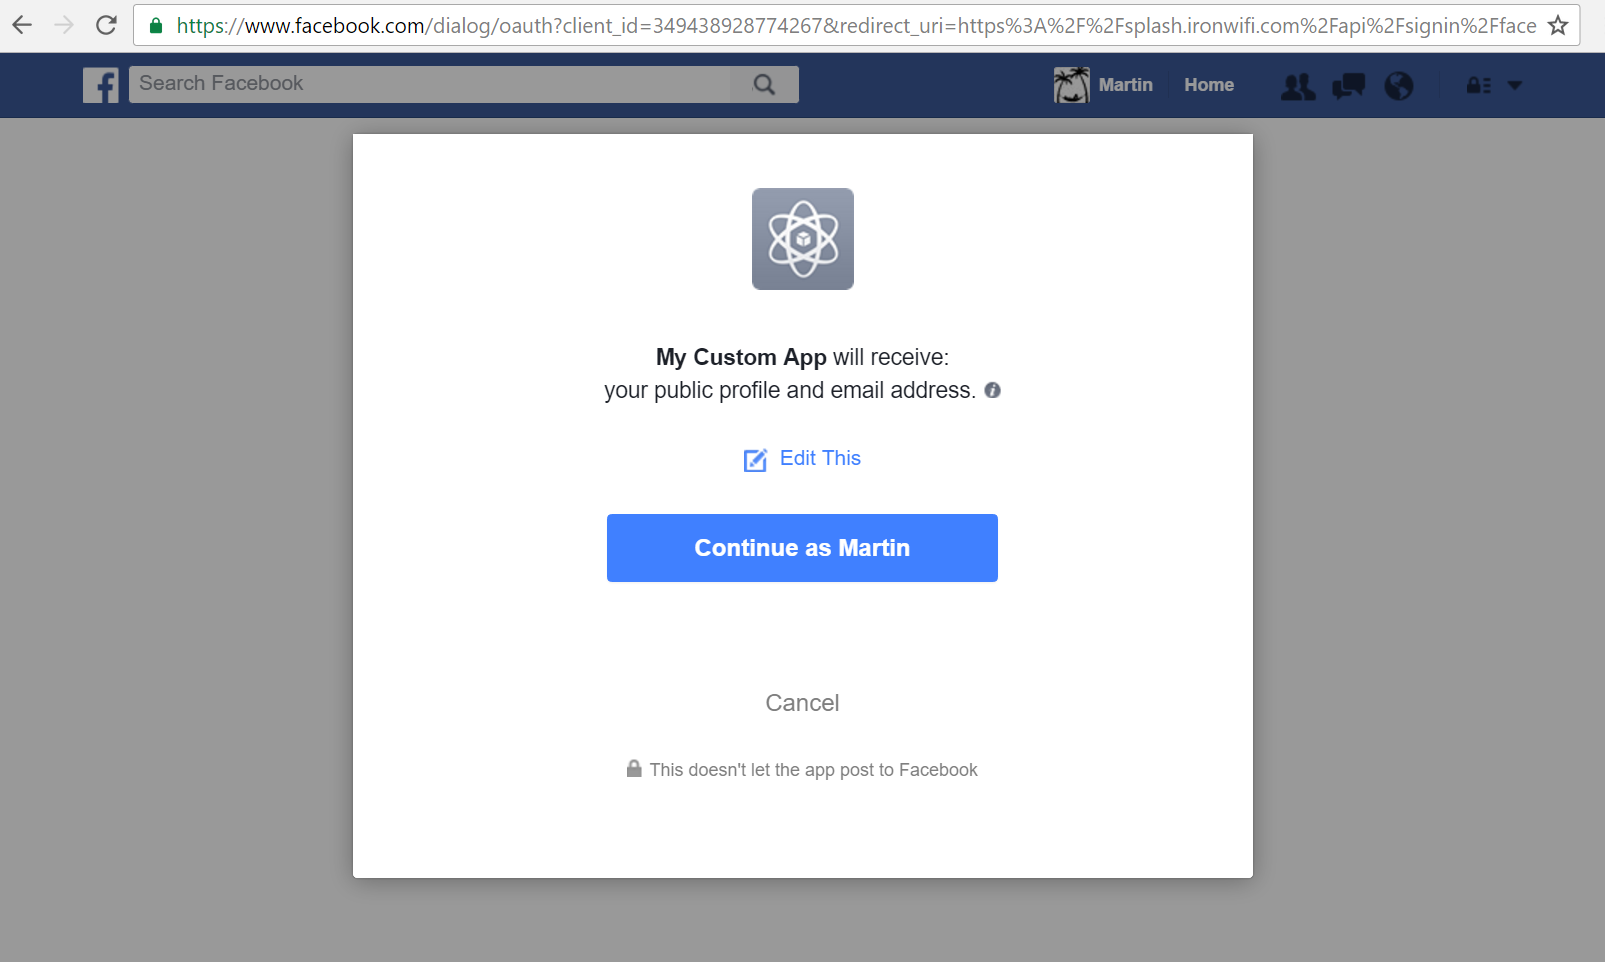 facebook authorize access